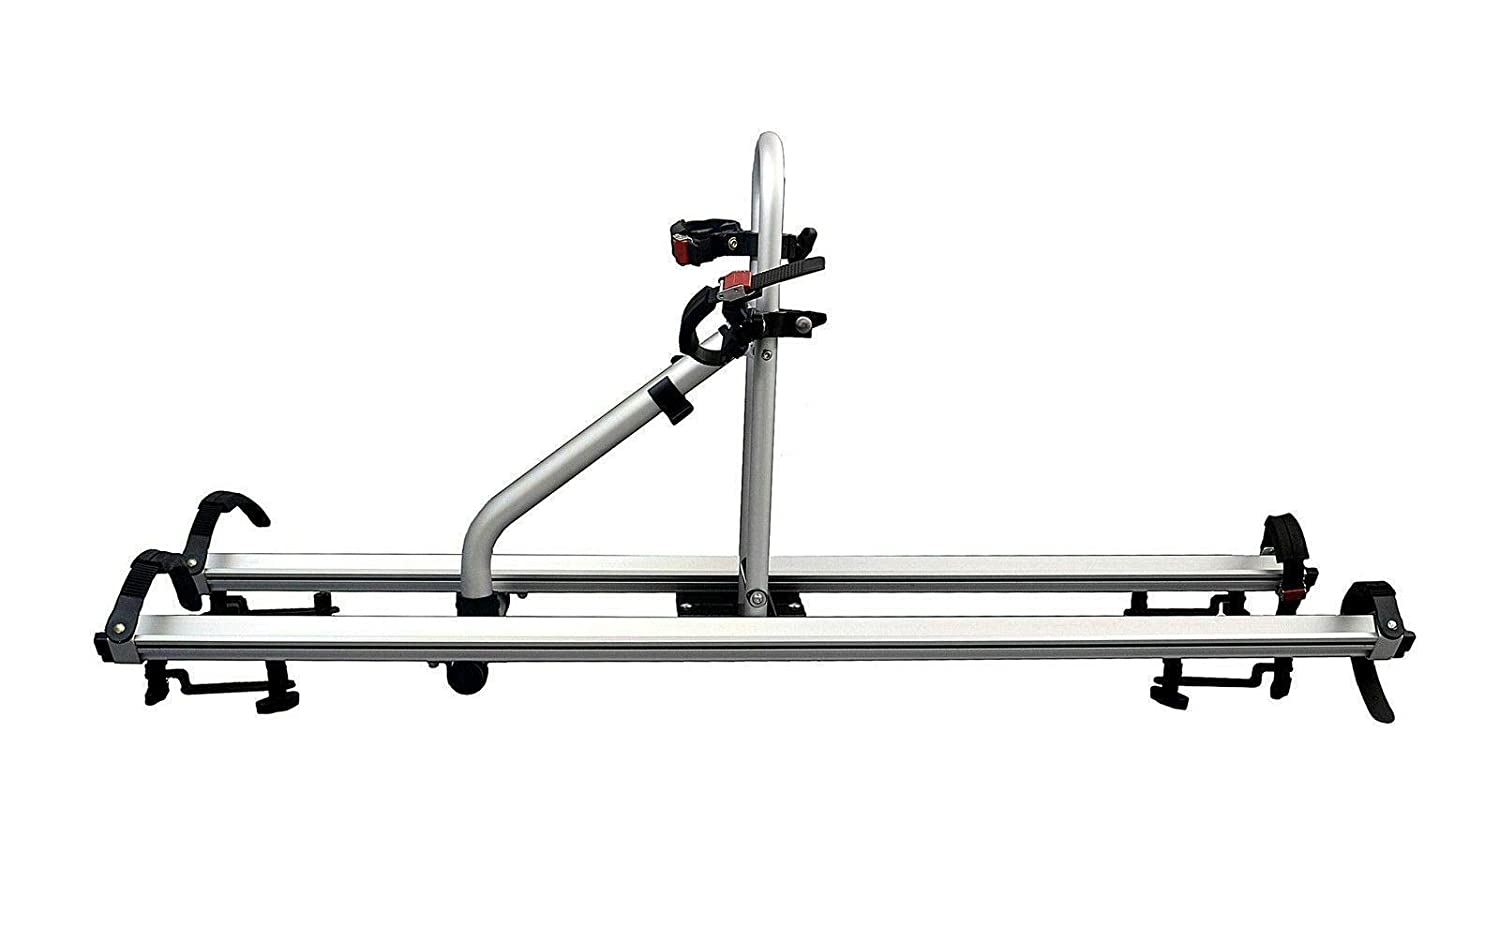 CyclingDeal Alloy Car Roof Bike Bicycle Carrier Rack for 2 Bikes Max Load 66 lbs – SUV Rooftop Mounted